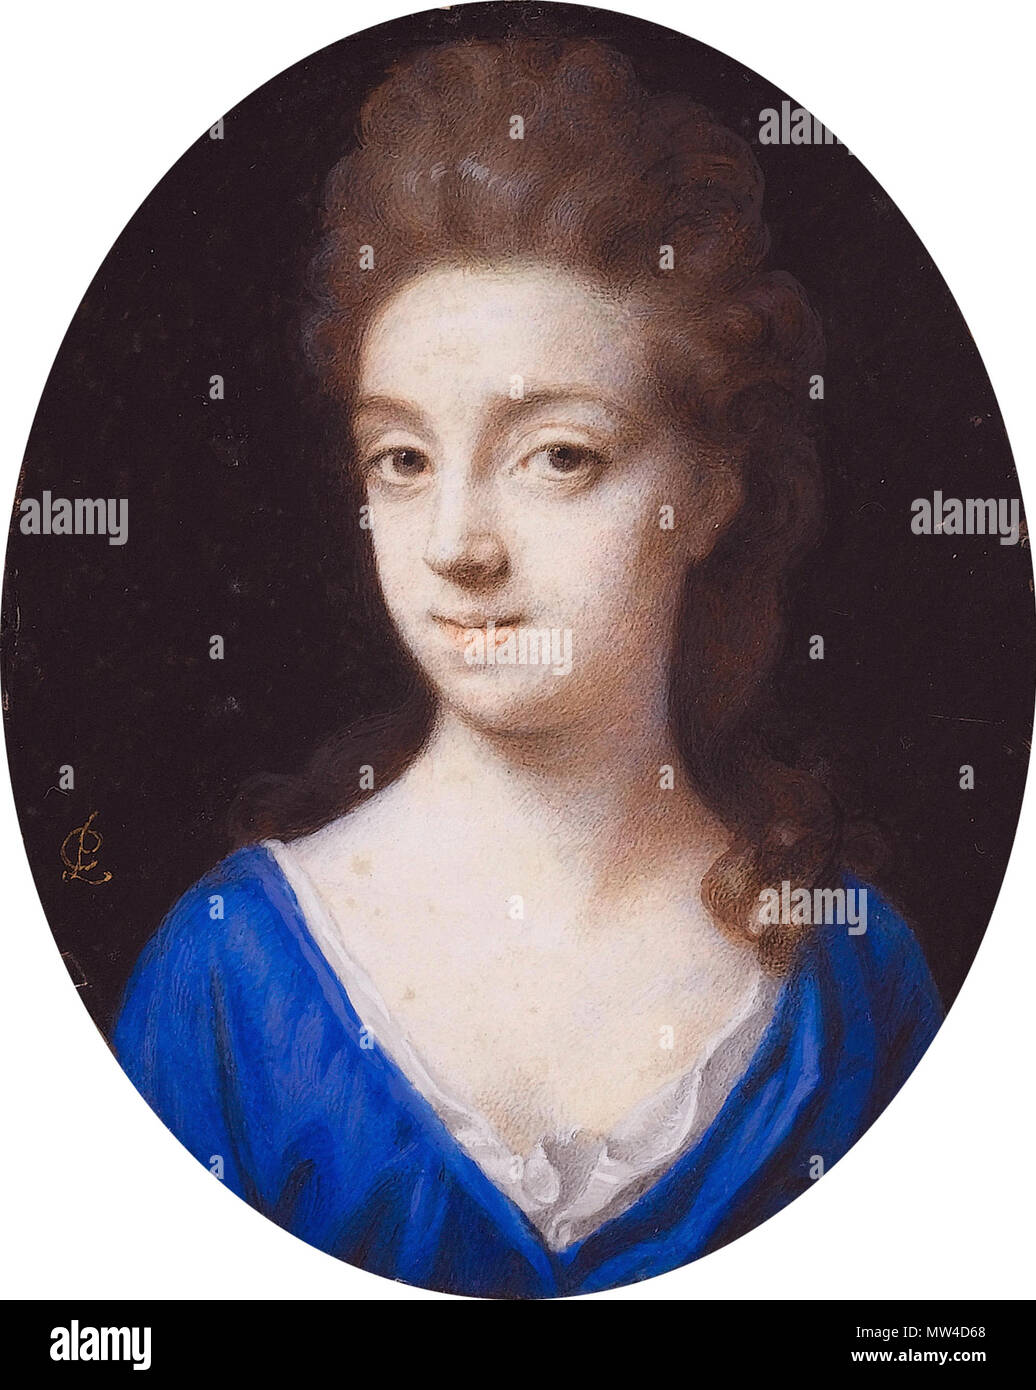 . English: Carey, daughter of Sir Alexander Fraser Bt., wife of Charles Mordaunt, 3rd Earl of Peterborough on vellum oval, 8,7 cm high signed l.c.: PC  . second half of 17th century. Peter Cross (c 1650-1724) 112 Carey, Countess of Peterborough, by Peter Cross (c 1650-1724) - Stock Image